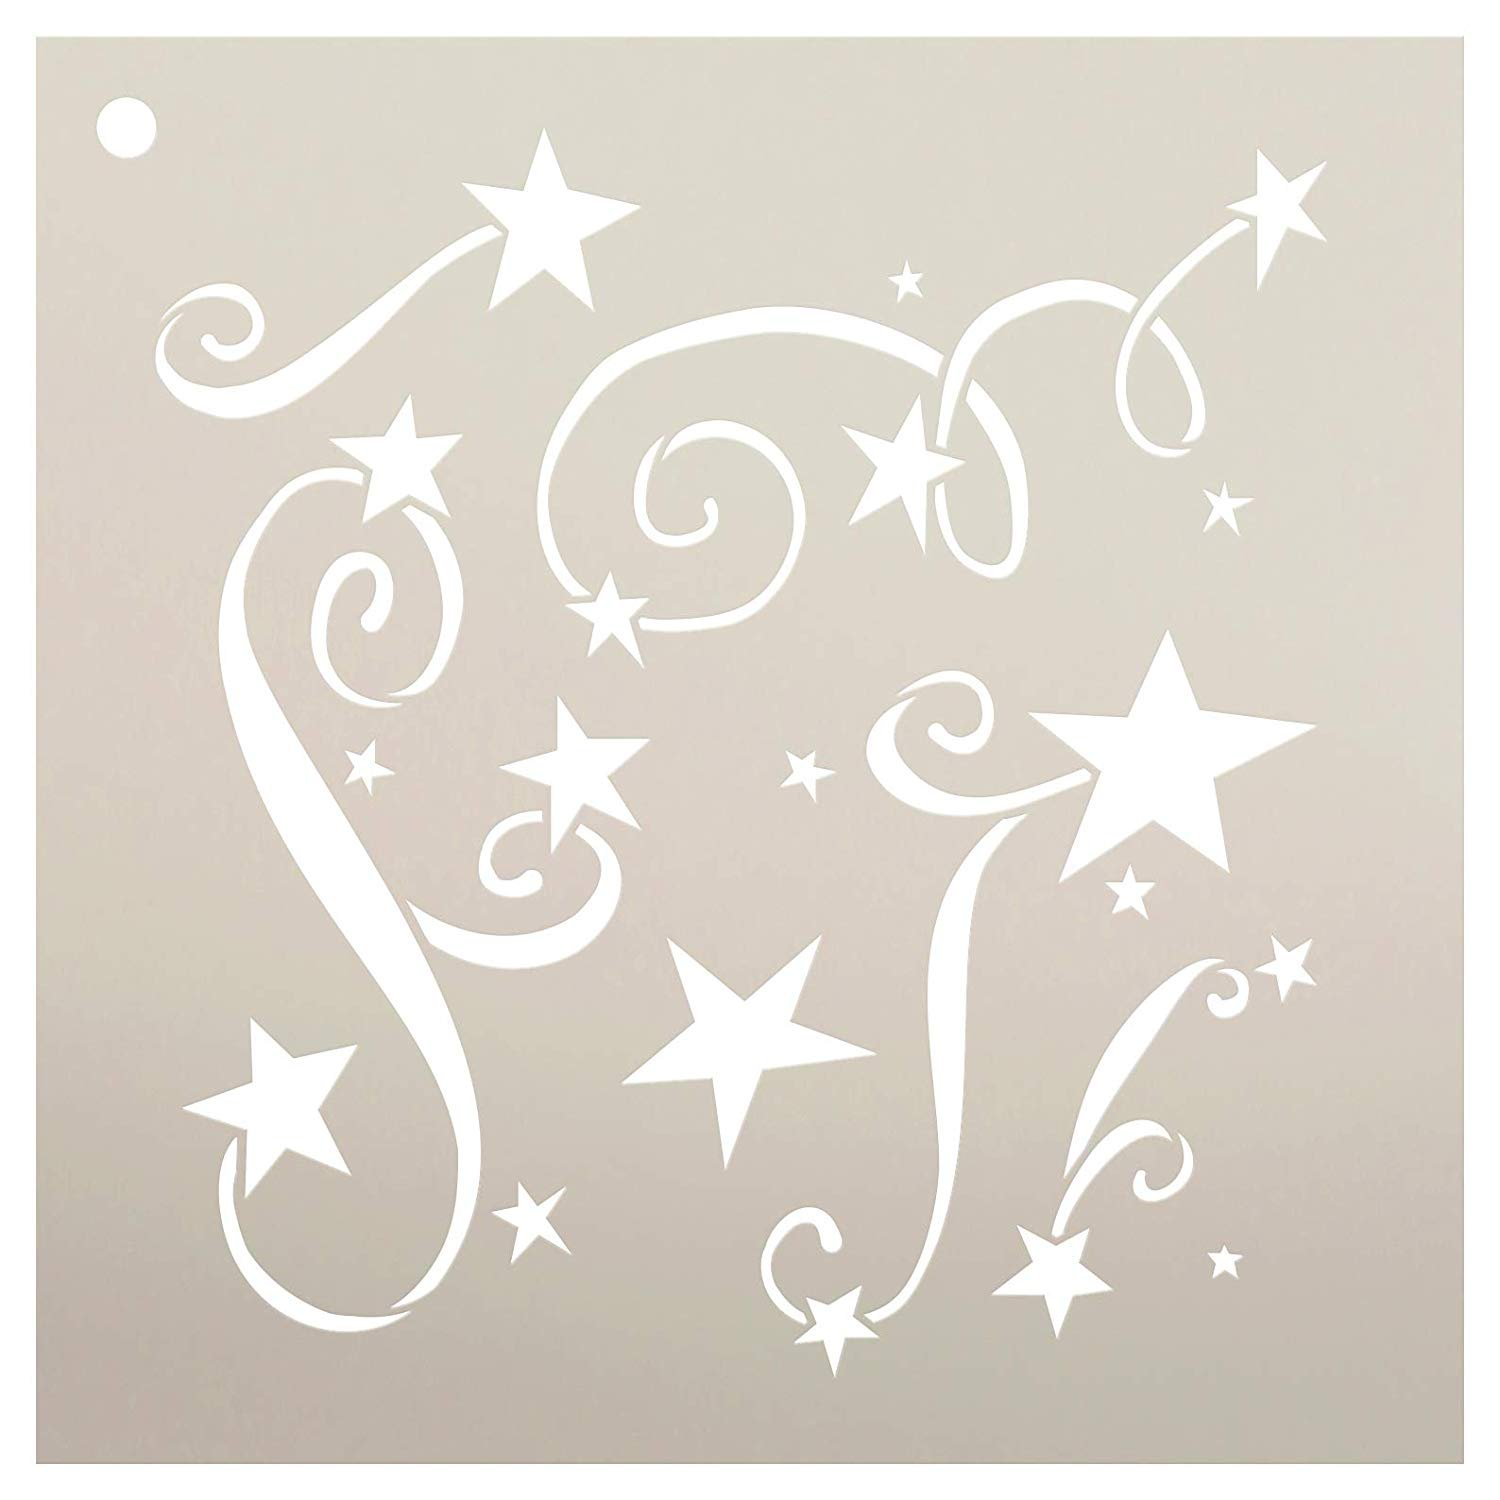 Holiday Stars Pattern Stencil by StudioR12 | DIY Christmas | Night Sky | Seasonal Gift | Craft Home Decor | Reusable Mylar Template | Paint Wood Sign - Select Size